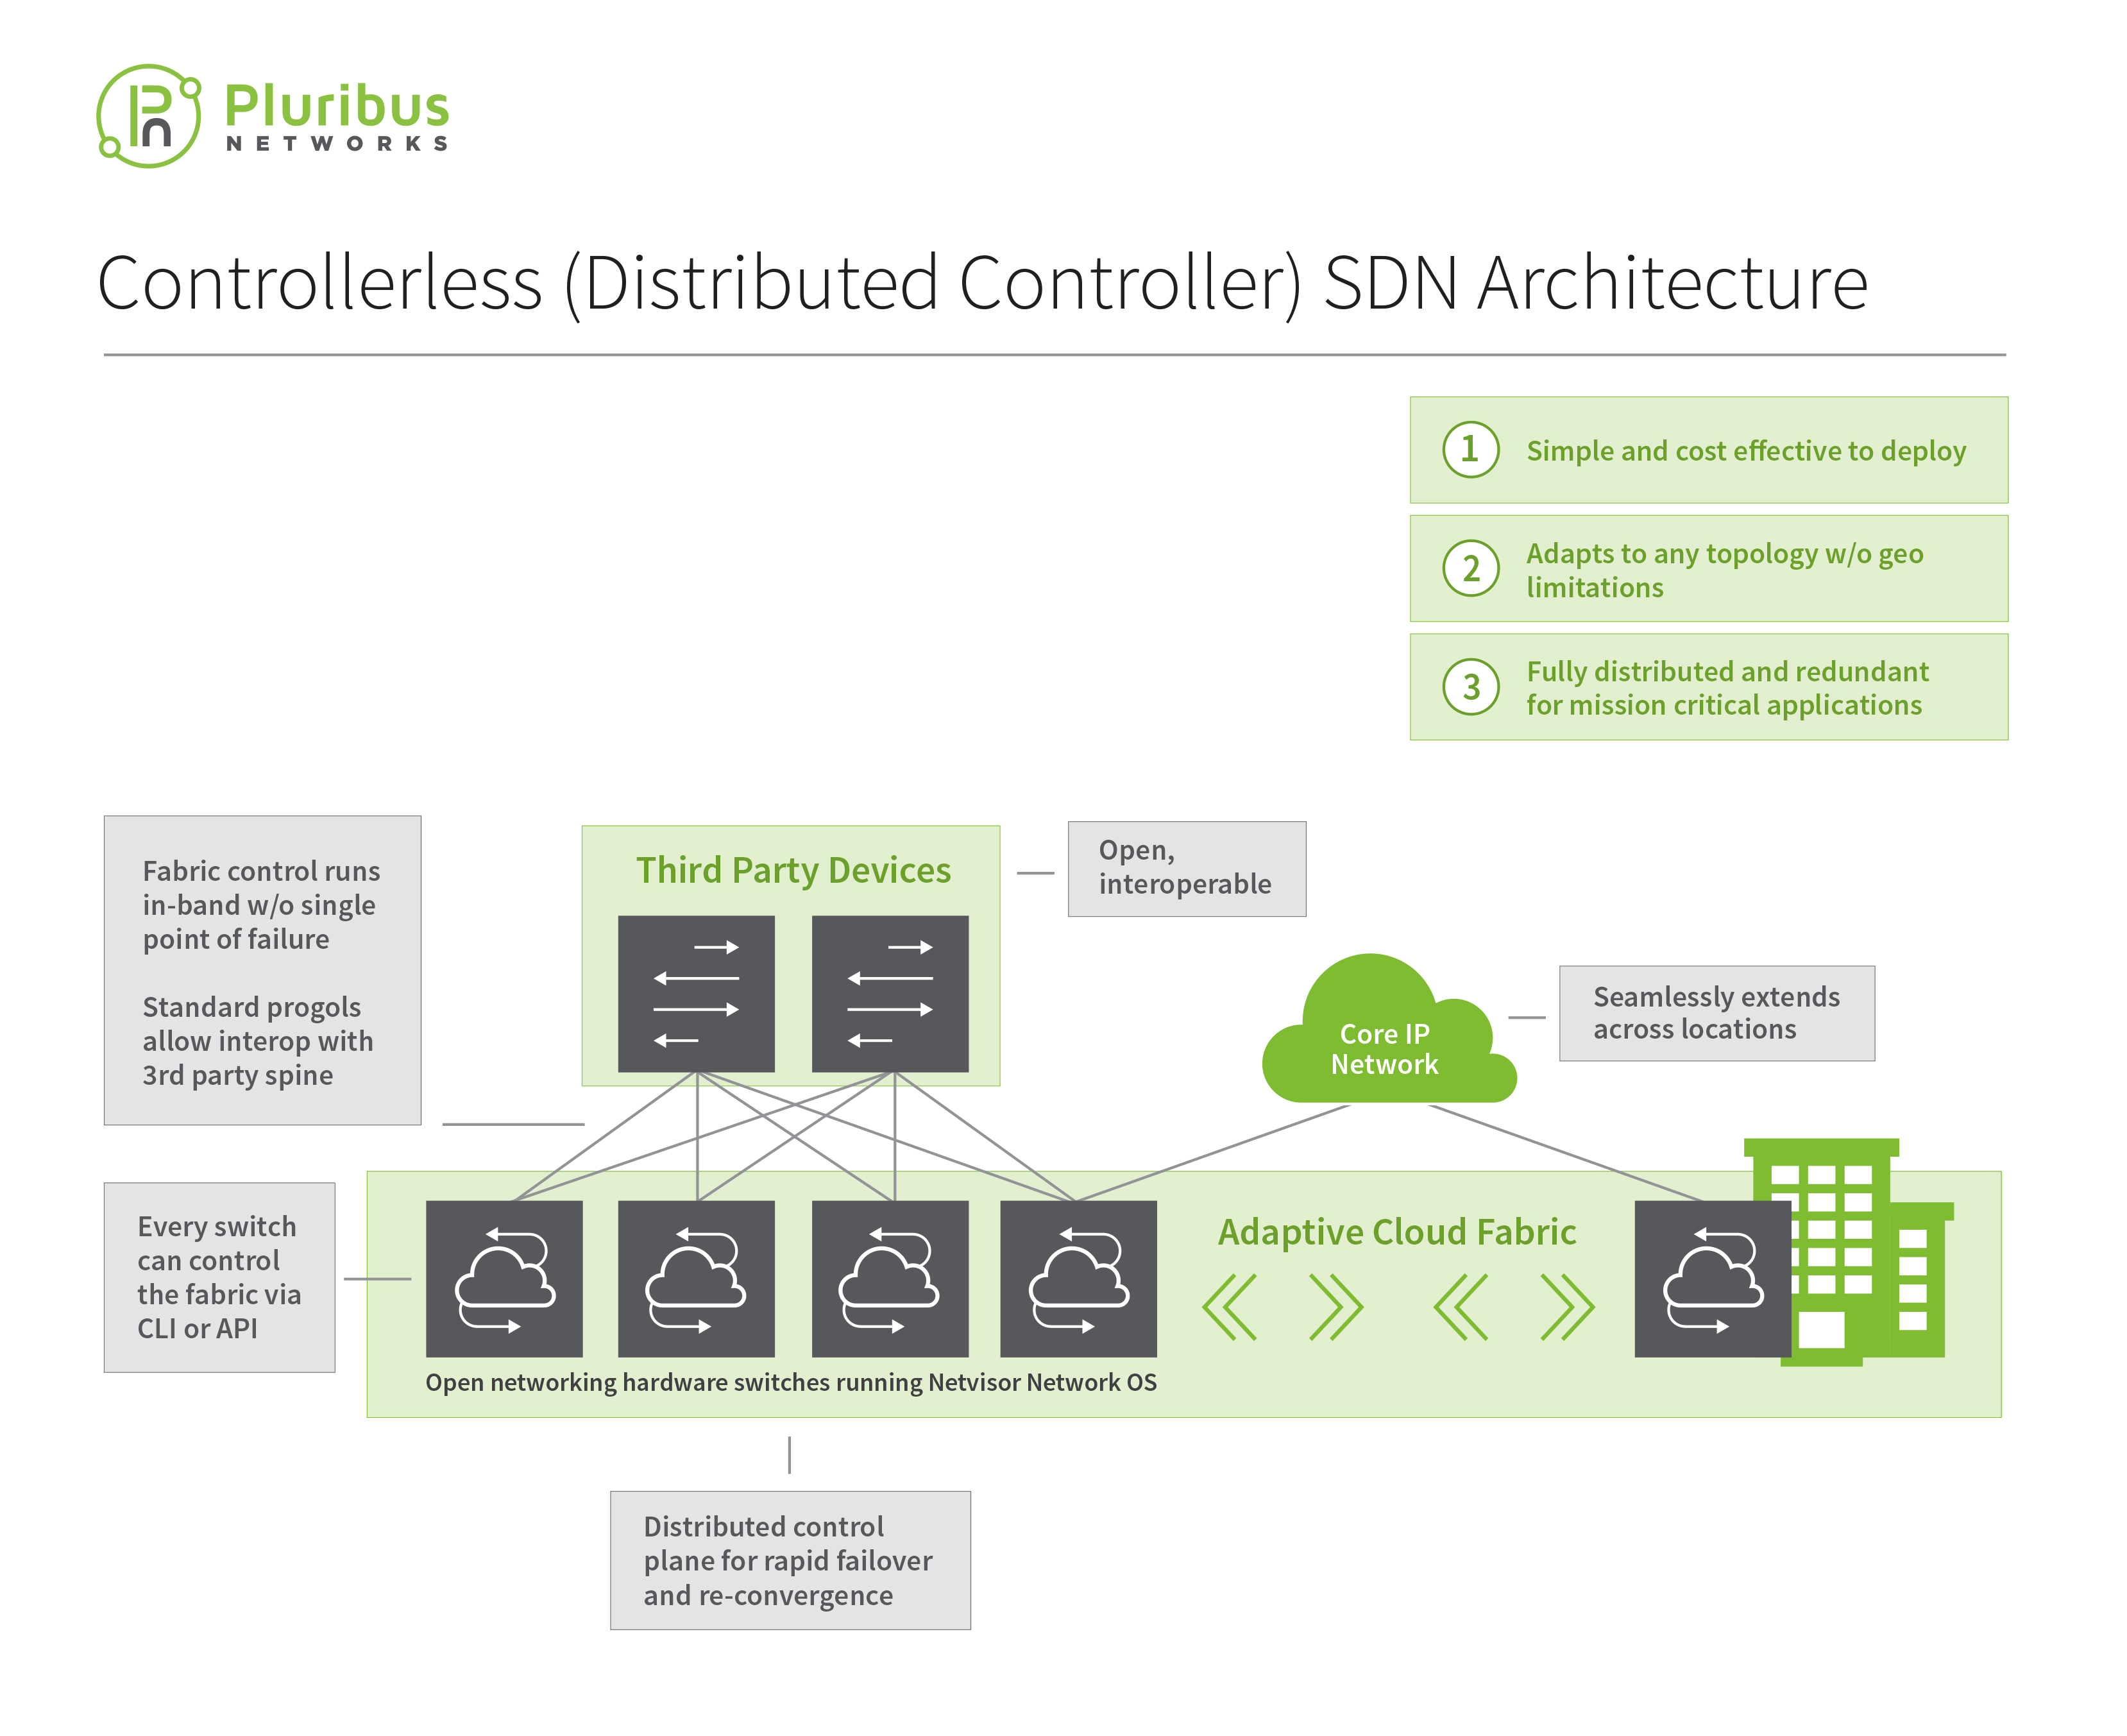 Perspective: Controller-based vs Controllerless-based SDN Solutions